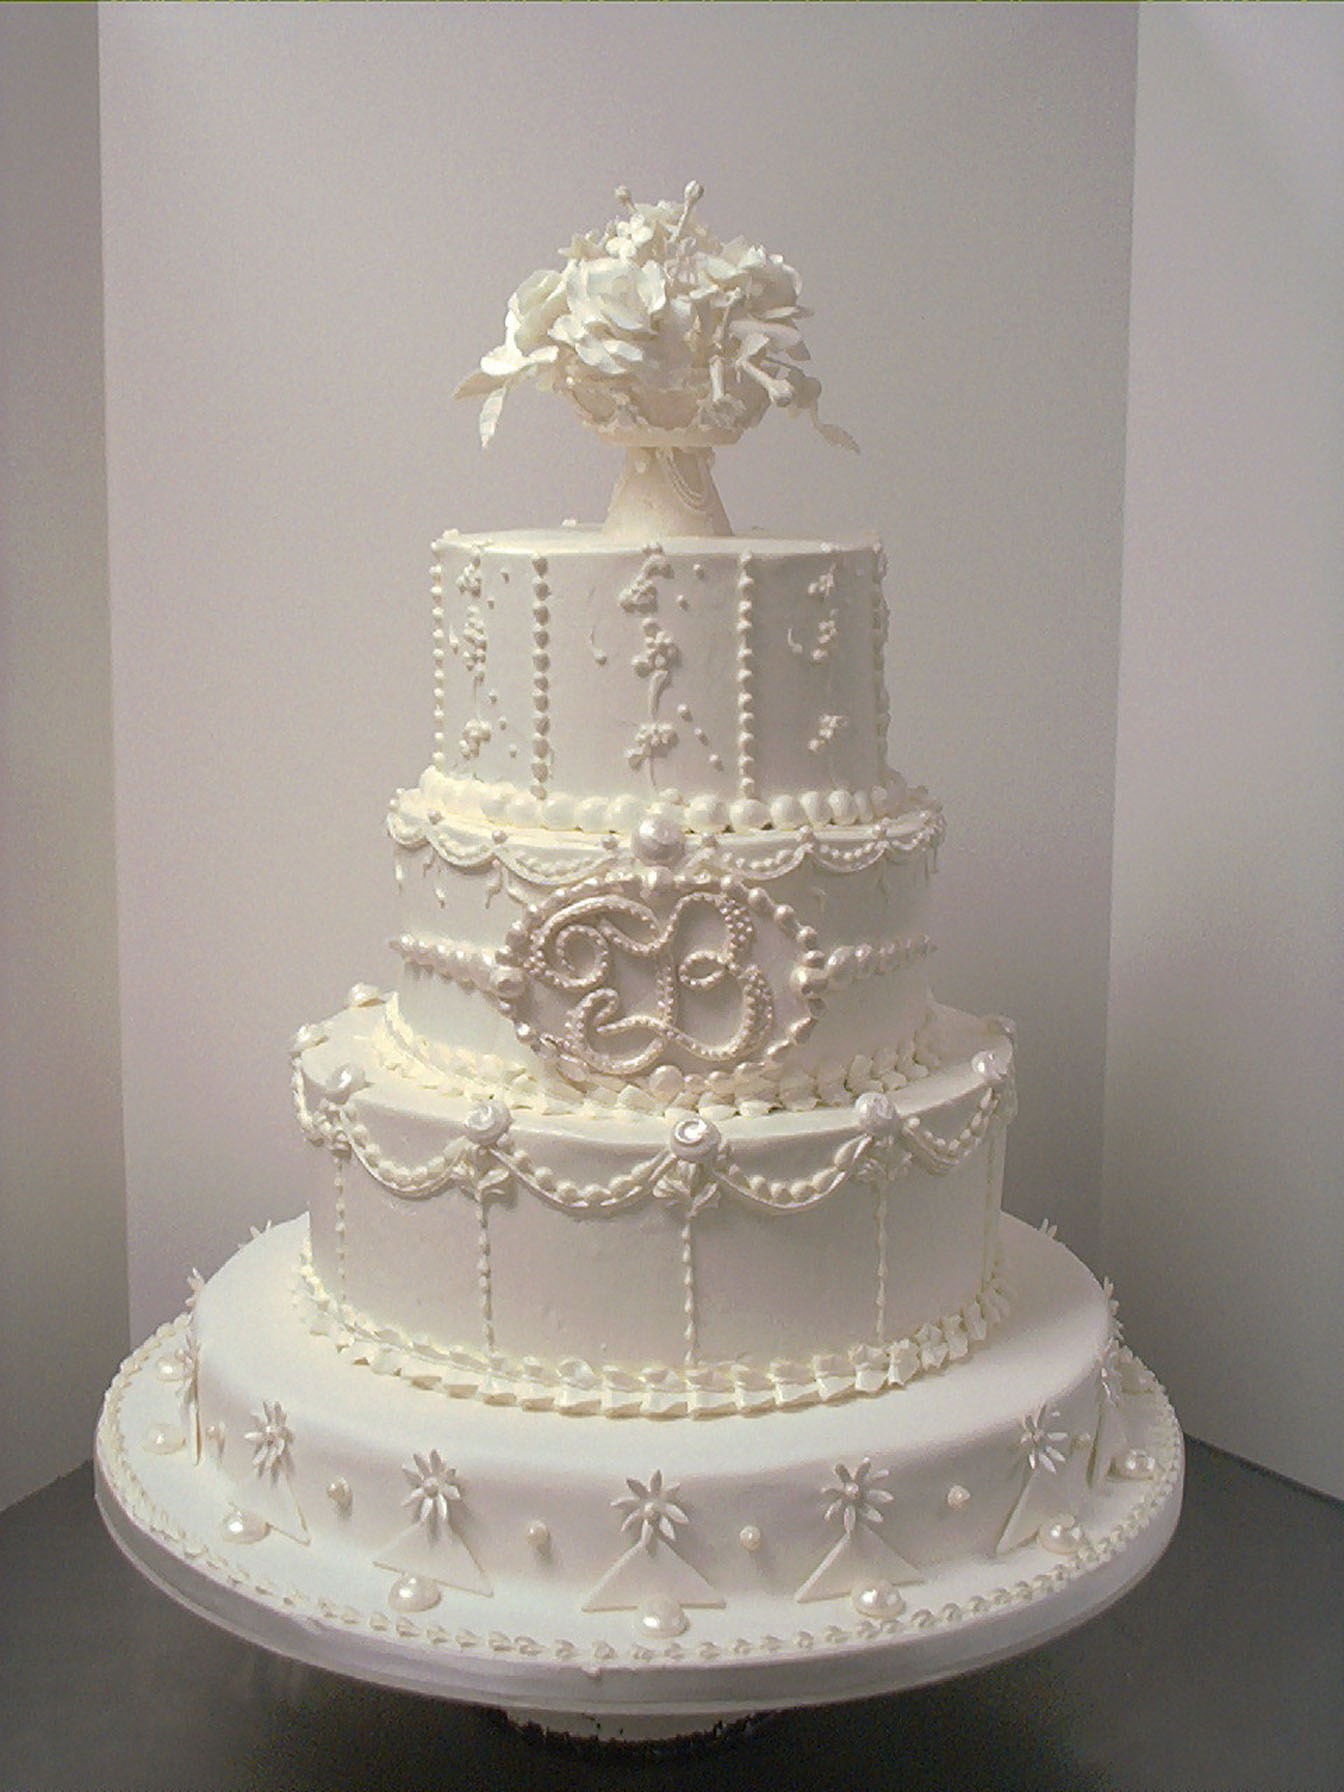 7 Old World STYLE Key Cakes Photo Elegant Wedding Cake Ideas